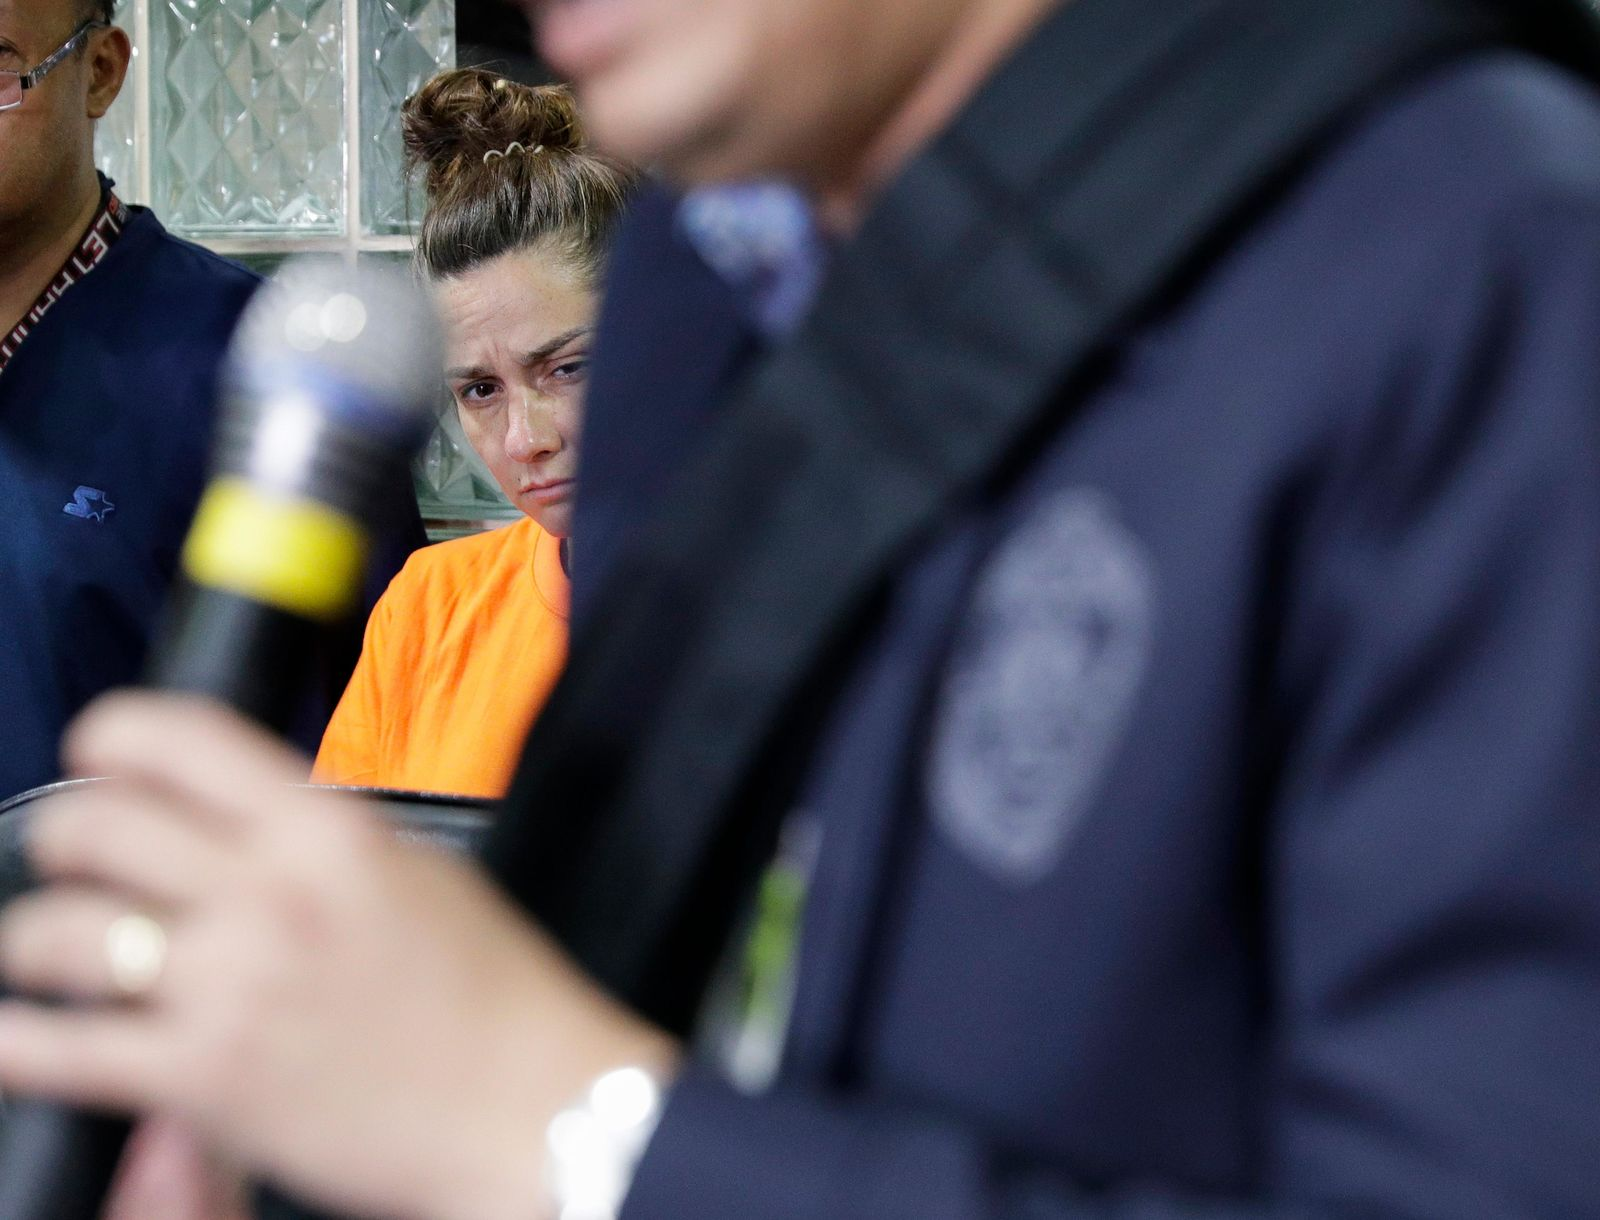 American Jennifer Erin Talbot from Ohio listens during a press conference by the National Bureau of Investigation (NBI) in Manila, Philippines on Thursday, Sept. 5, 2019. The NBI said that the 43-year-old Talbot was arrested at the Ninoy Aquino International Airport yesterday for trying to bring out of the country a 6-day old Filipino baby without proper travel documents. (AP Photo/Aaron Favila)